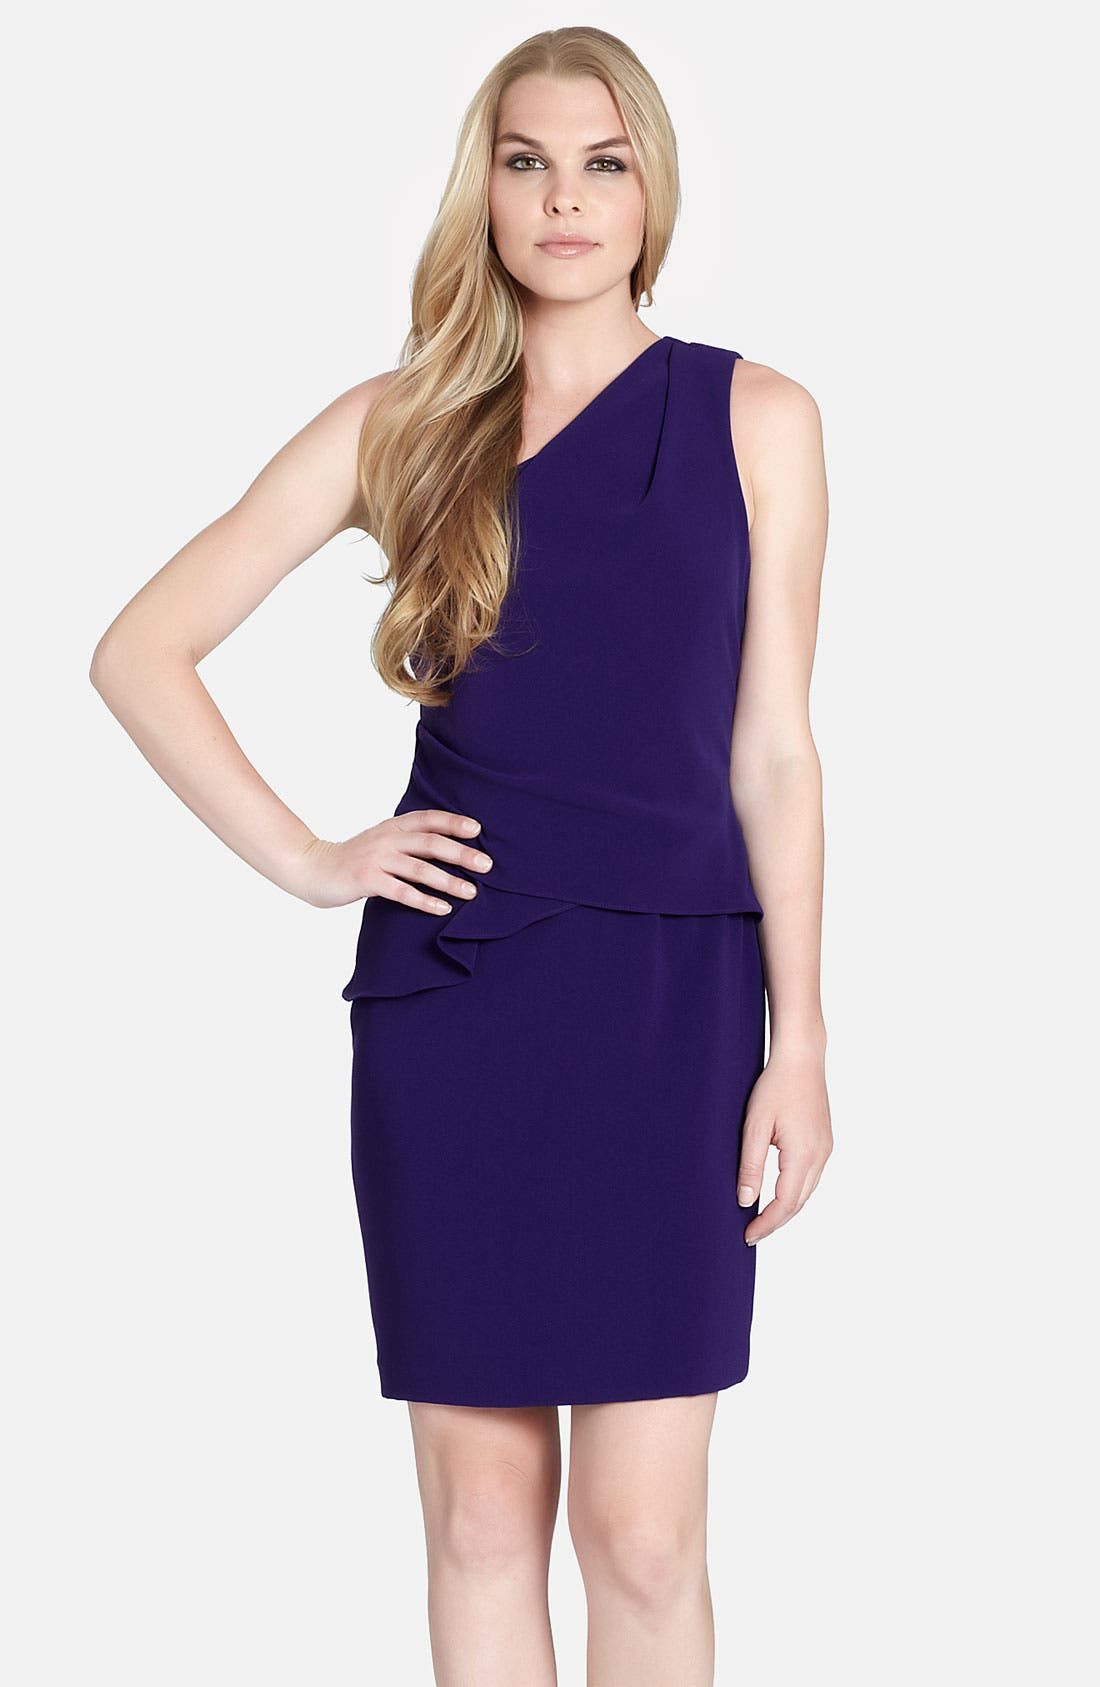 Alternate Image 1 Selected - Cynthia Steffe 'Brielle' One Shoulder Side Peplum Dress